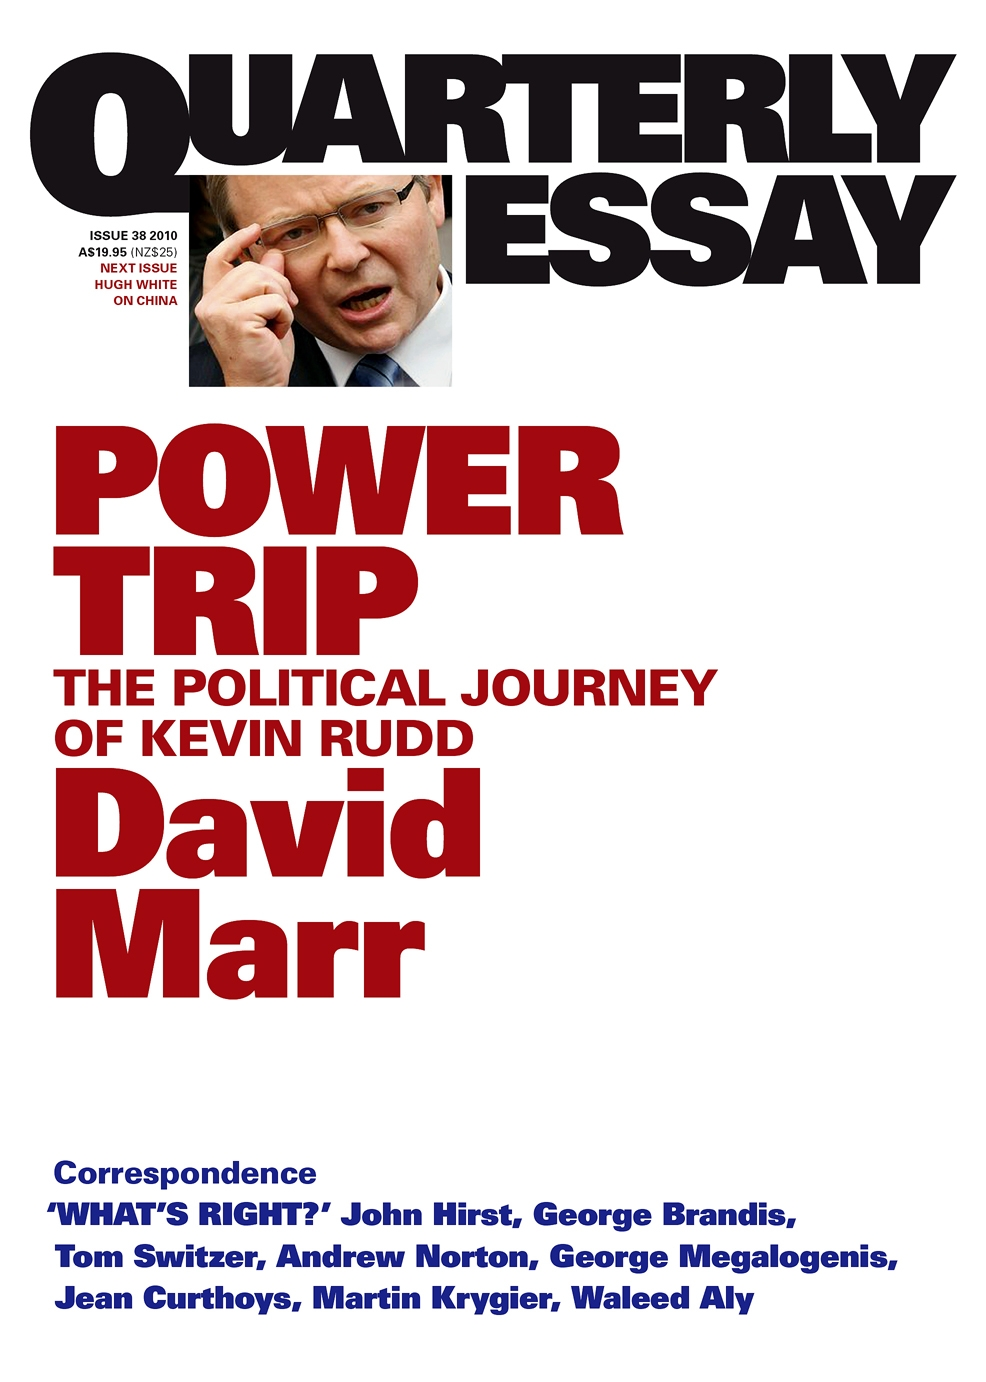 "david marr essay 38 Marr's last treatise on a political leader, ""power trip: the political journey of kevin rudd"", quarterly essay 38, hit the newsstands in early june, 2010."